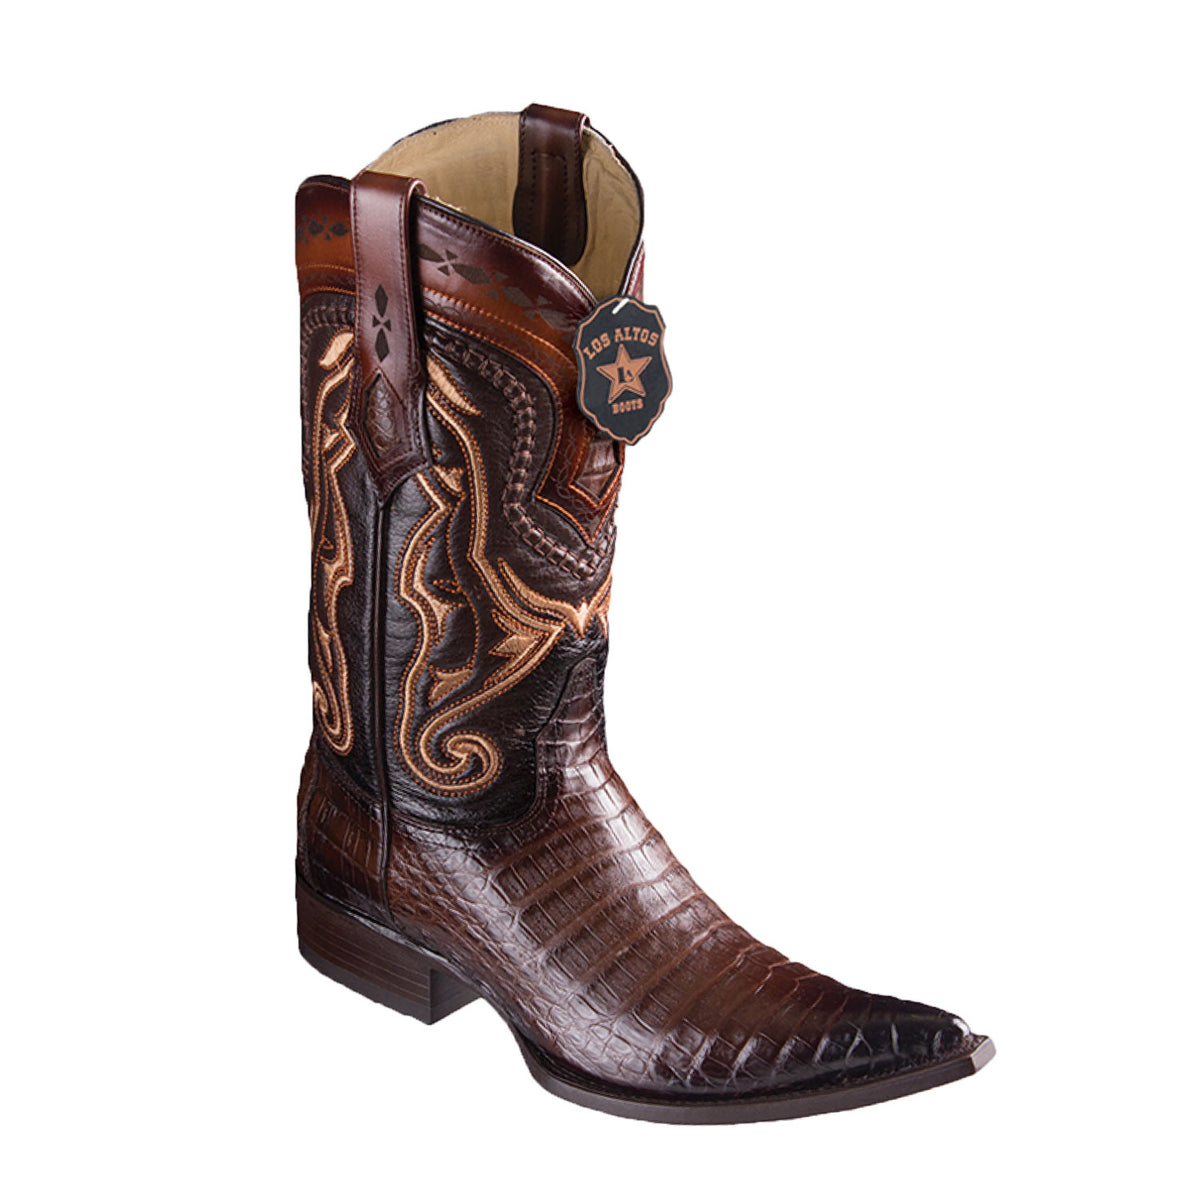 Caiman Belly Skin Boot LAB-9538